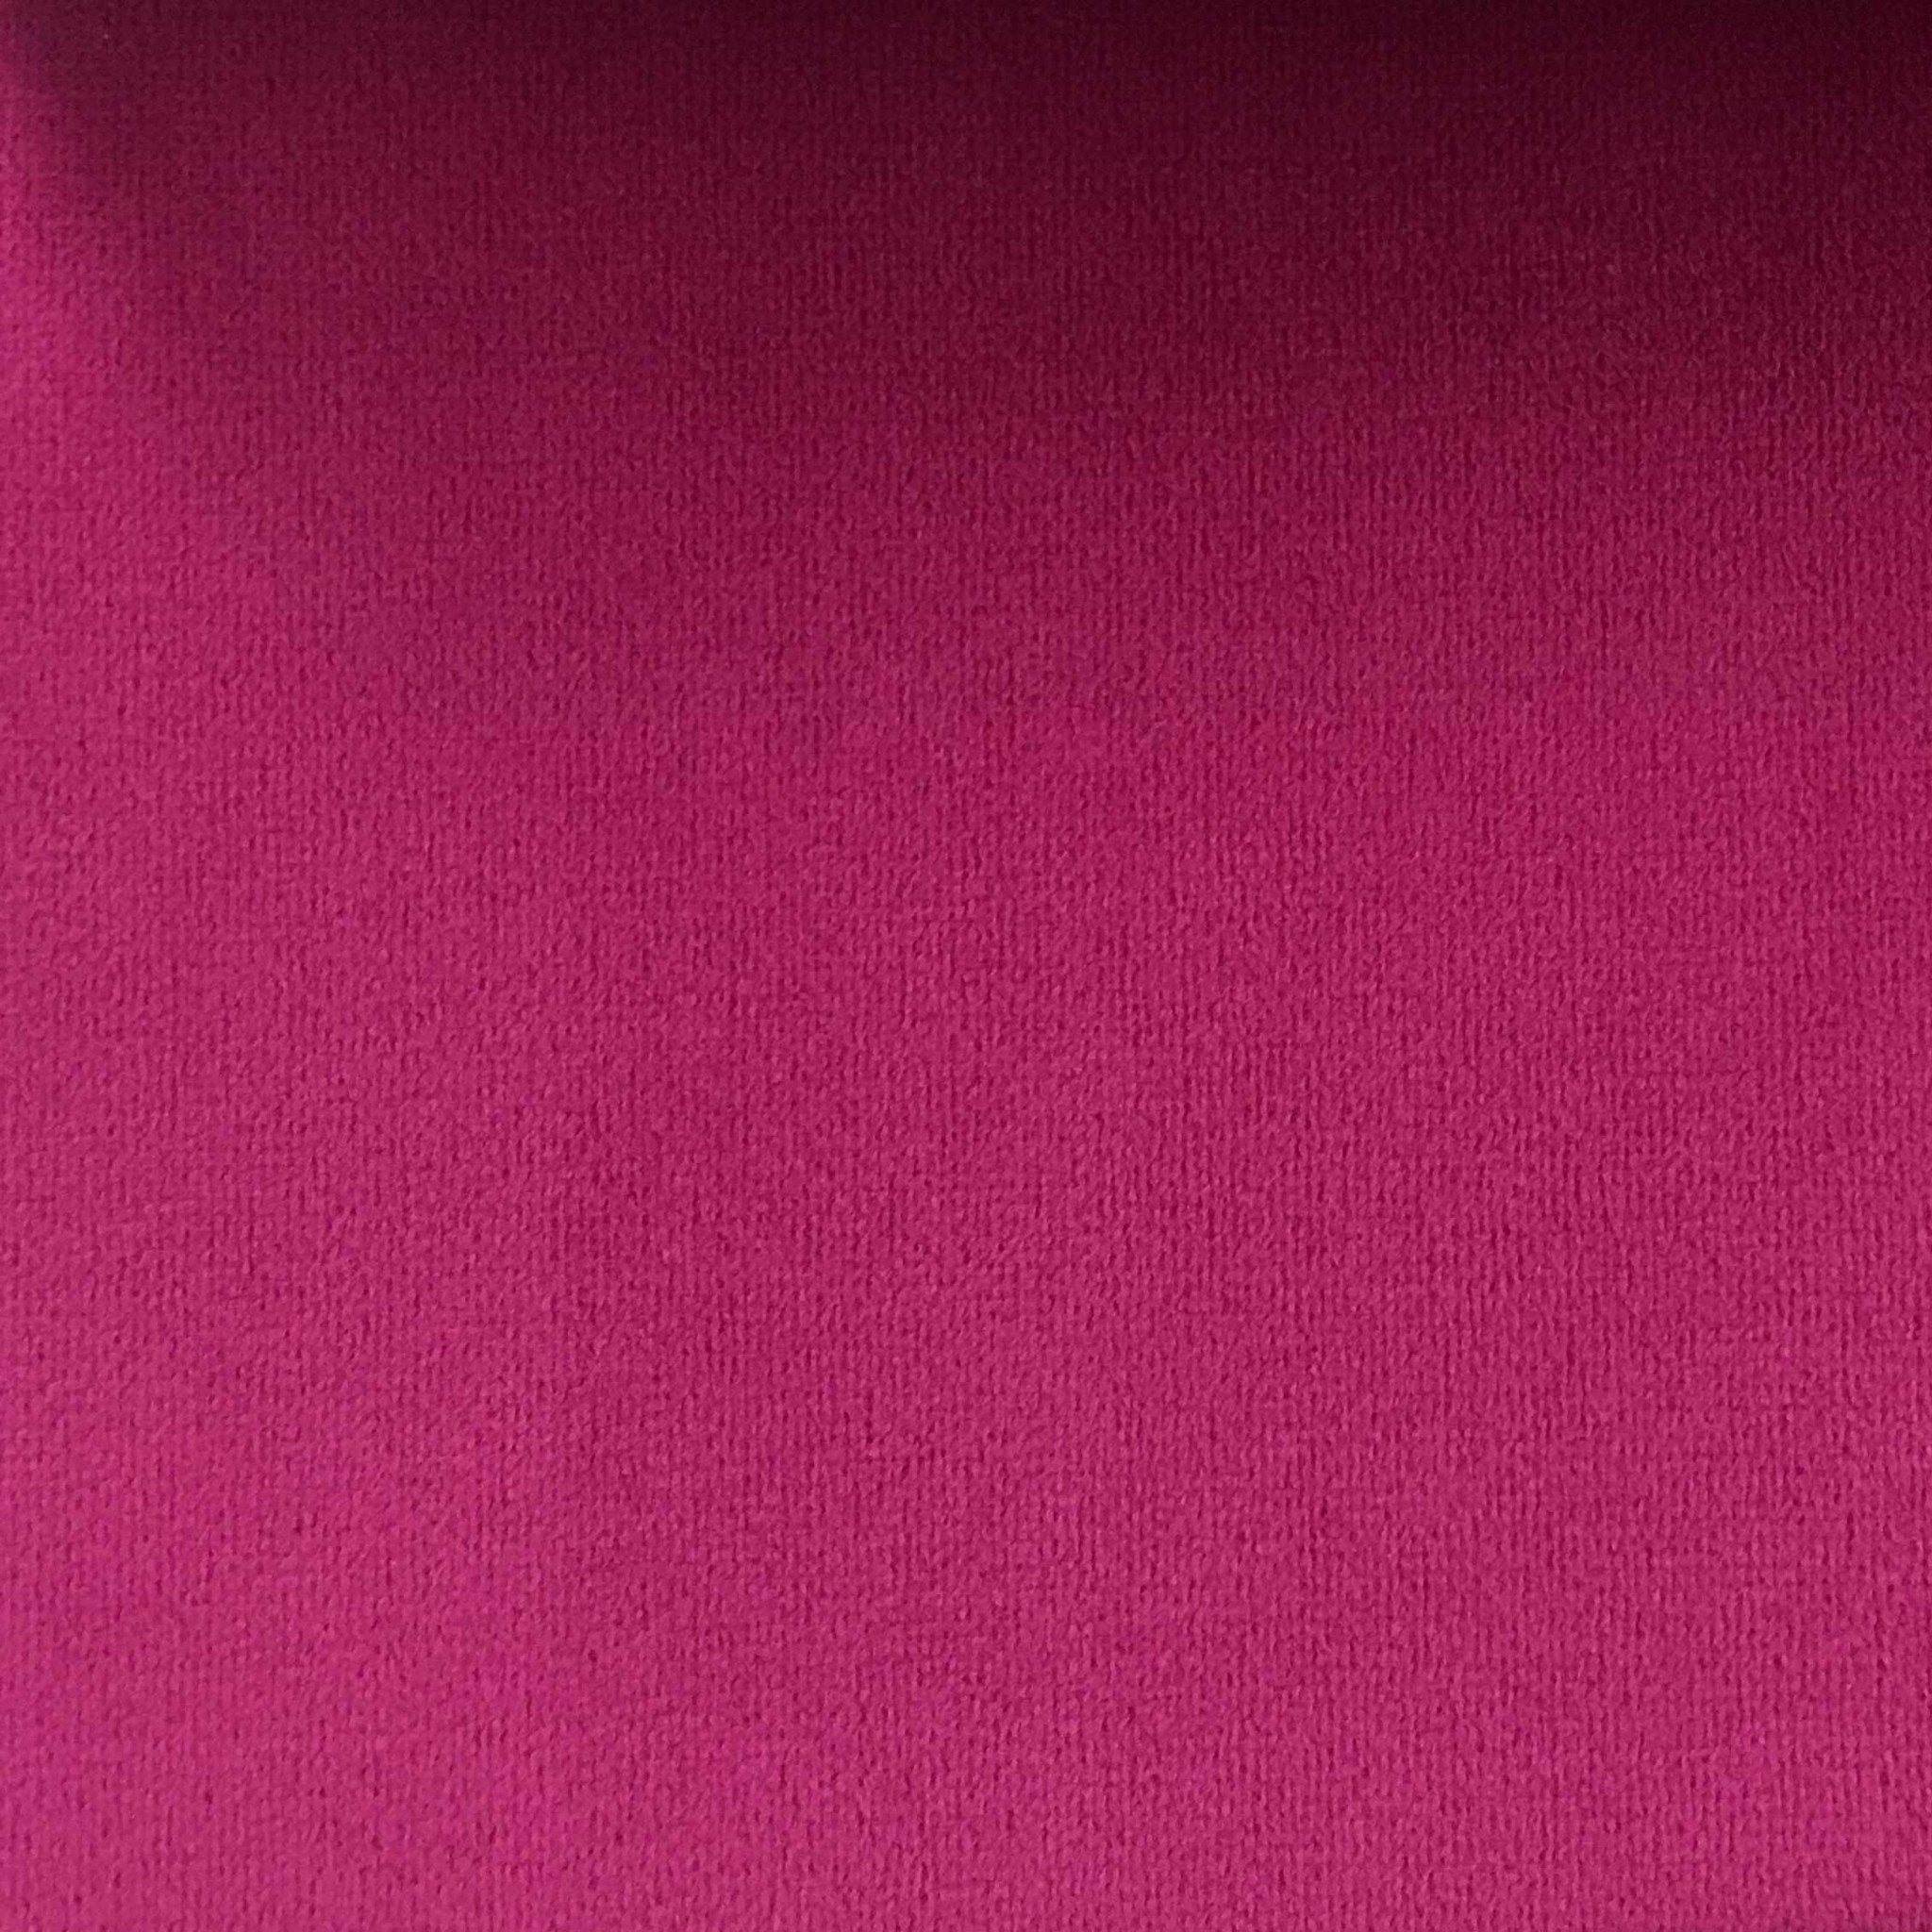 Highbury Solid Plush Microvelvet Upholstery Fabric By The Yard